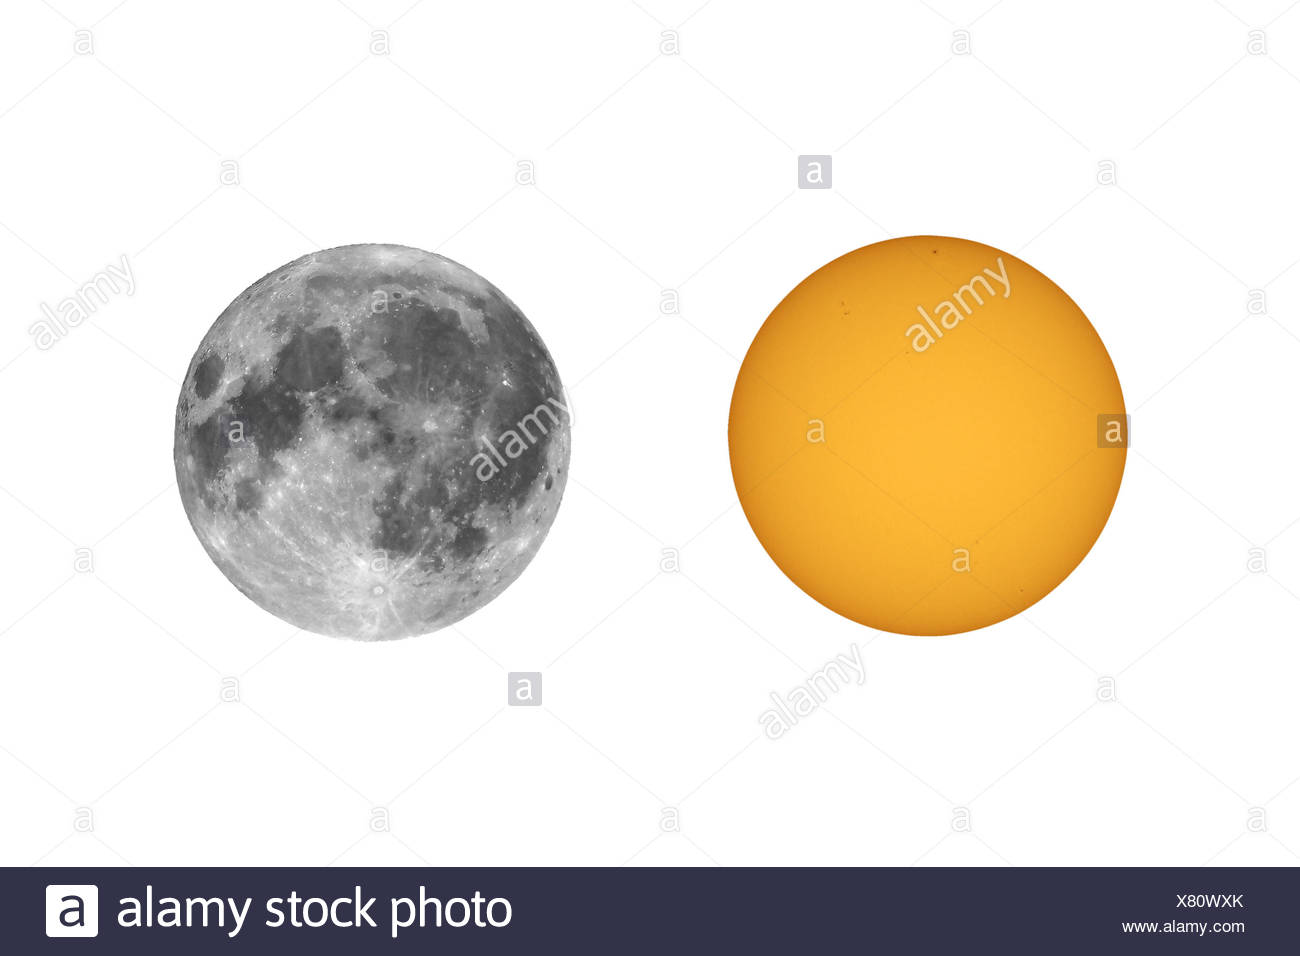 Sun with sunspots seen with telescope - Stock Image